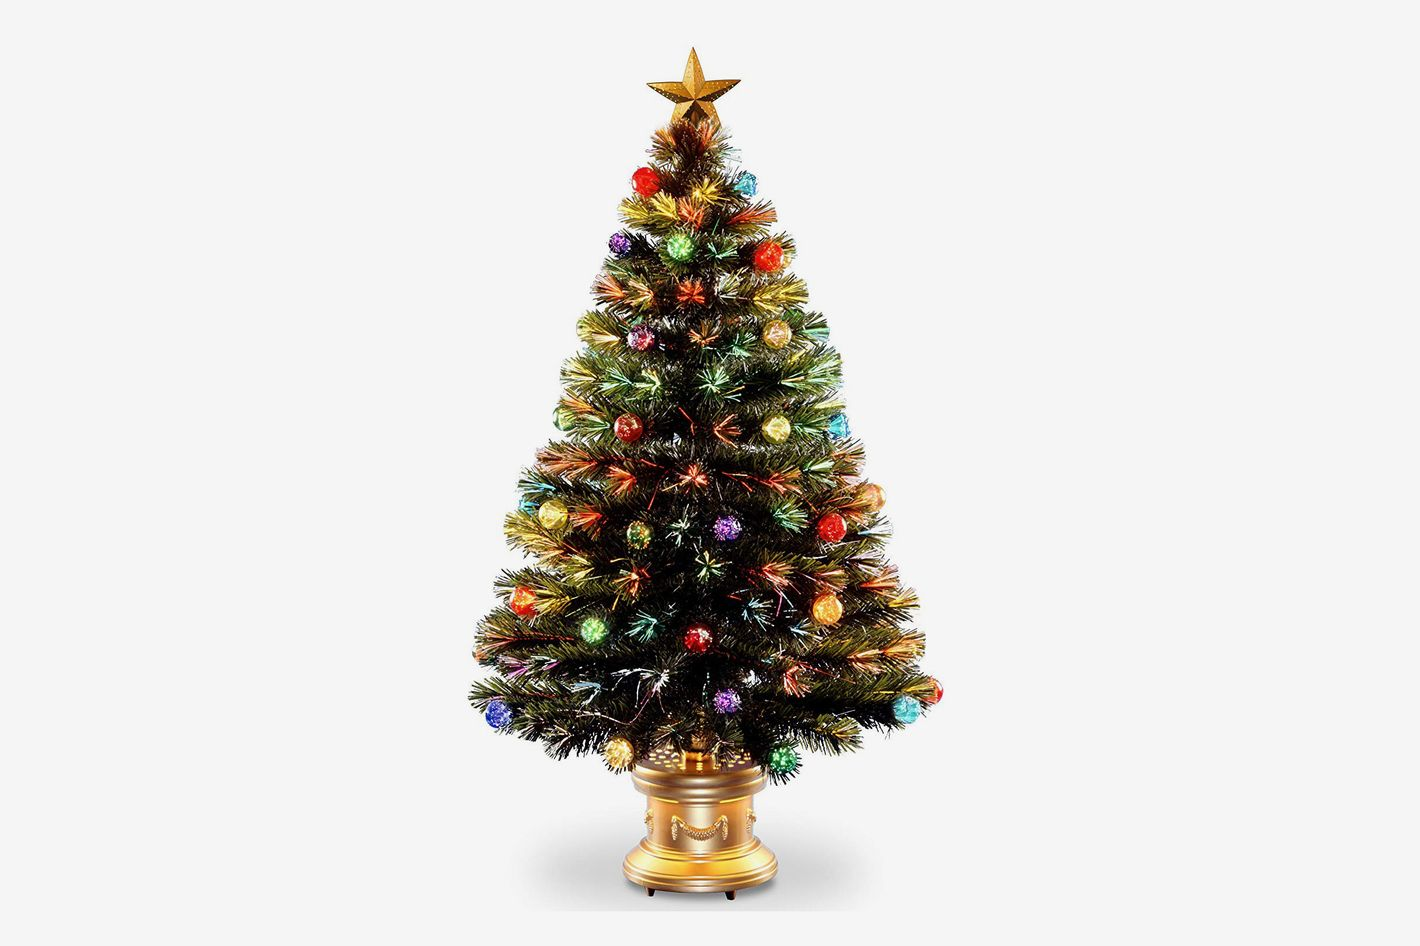 best pre lit 4 foot christmas tree with ornaments national tree 48 inch fiber optic ornament fireworks tree